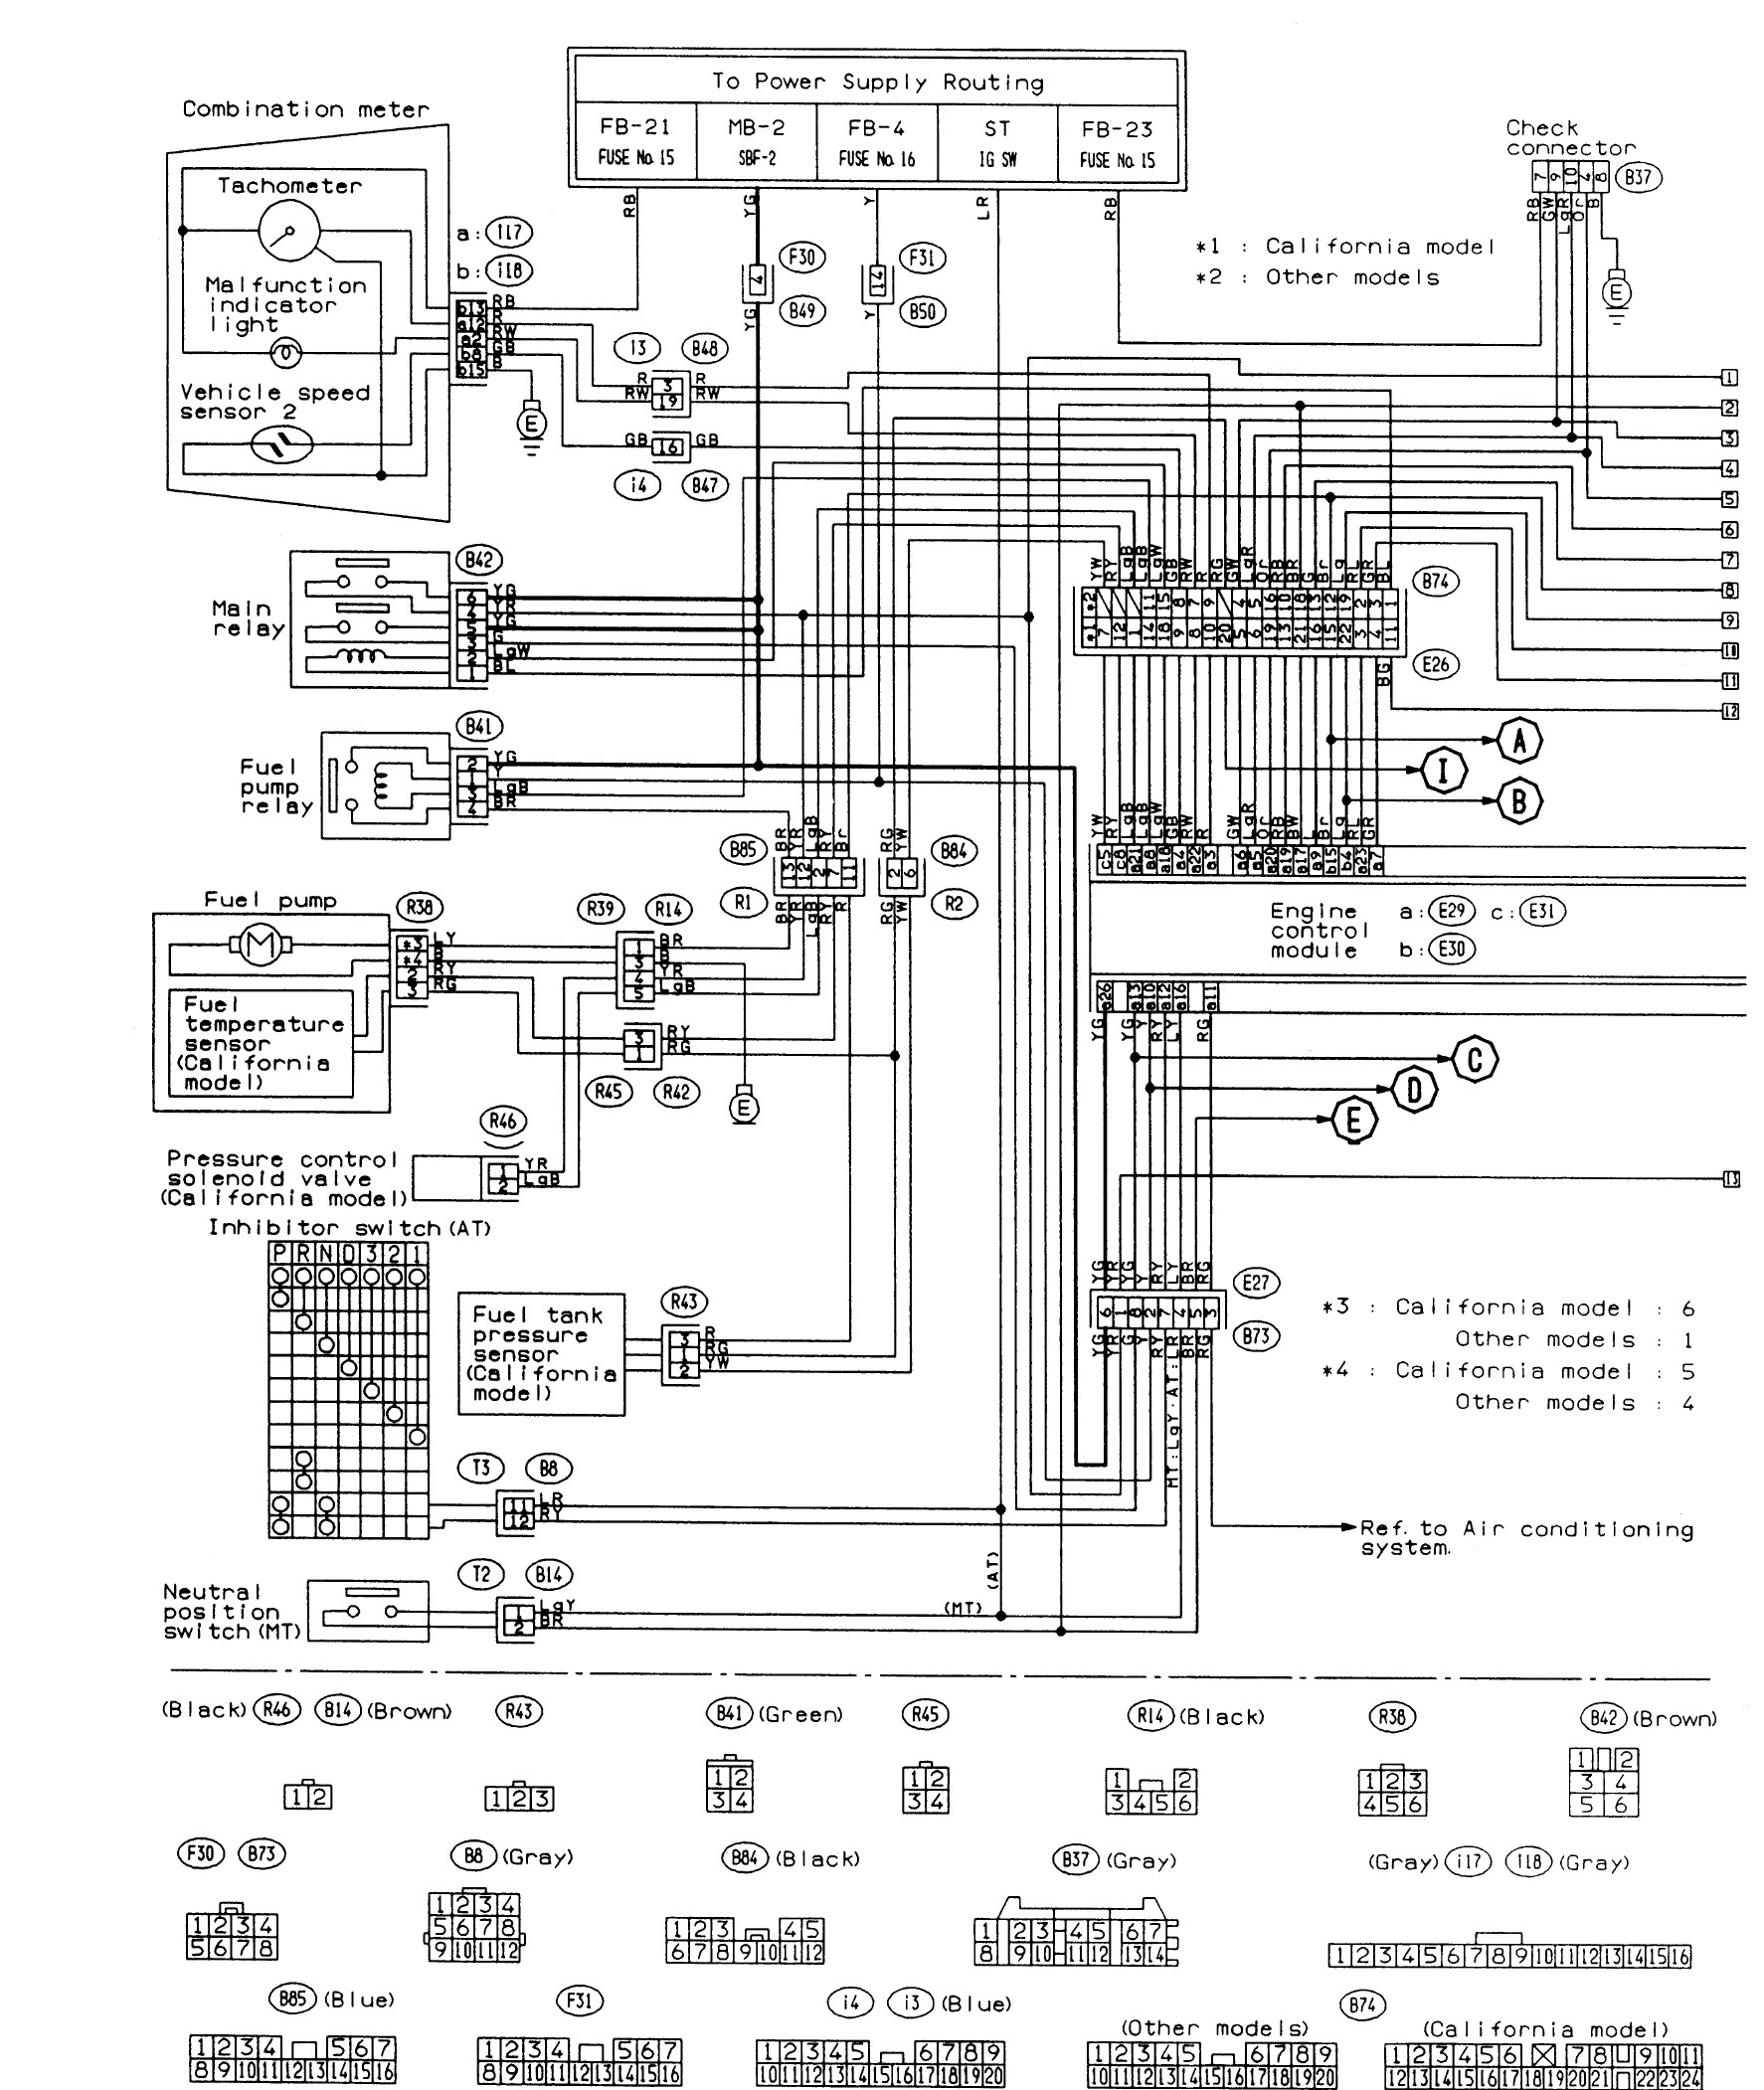 subaru legacy engine diagram 2 wiring diagram for 1997 subaru legacy rh detoxicrecenze com 96 Subaru Legacy Outback Stereo Diagram 2010 Subaru Legacy Headlight Diagram